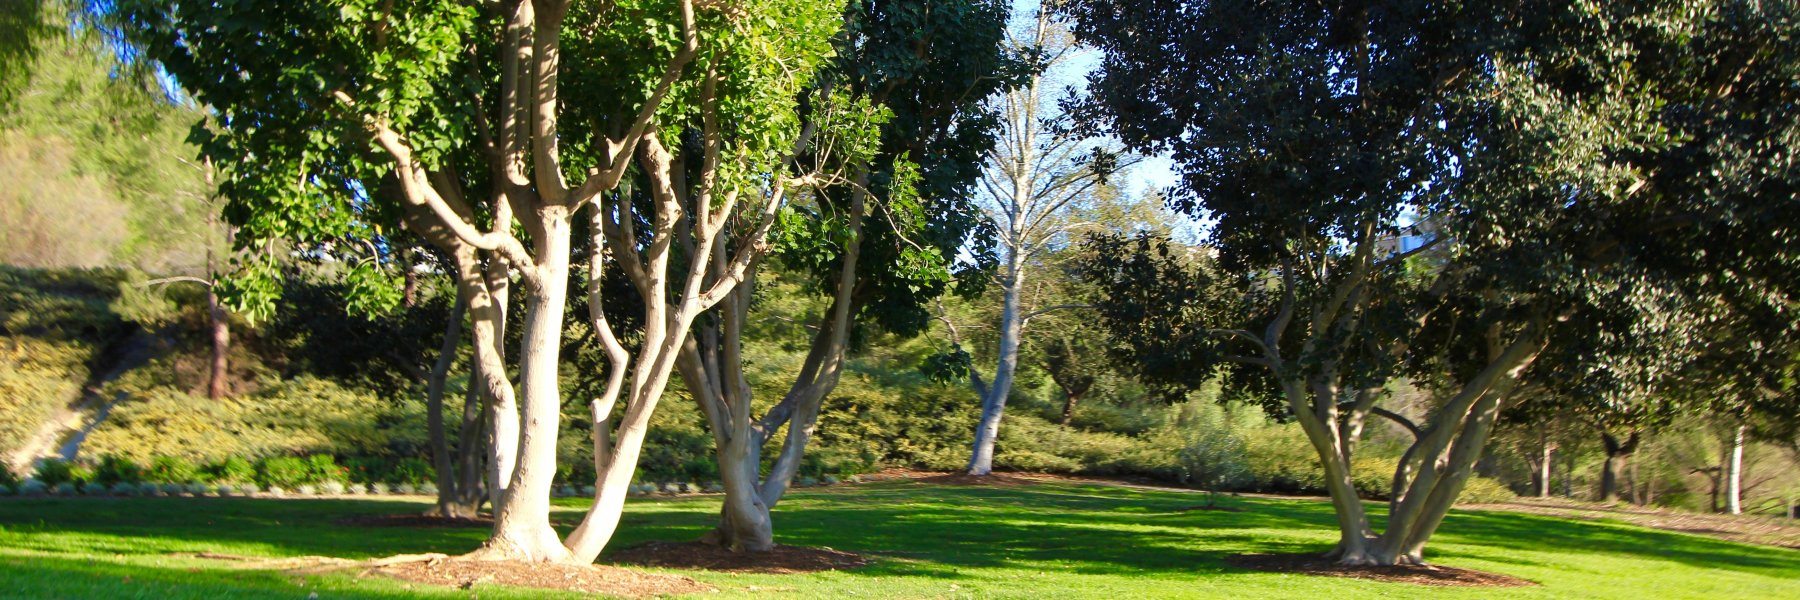 Pacific Hills is a community of homes in Mission Viejo California